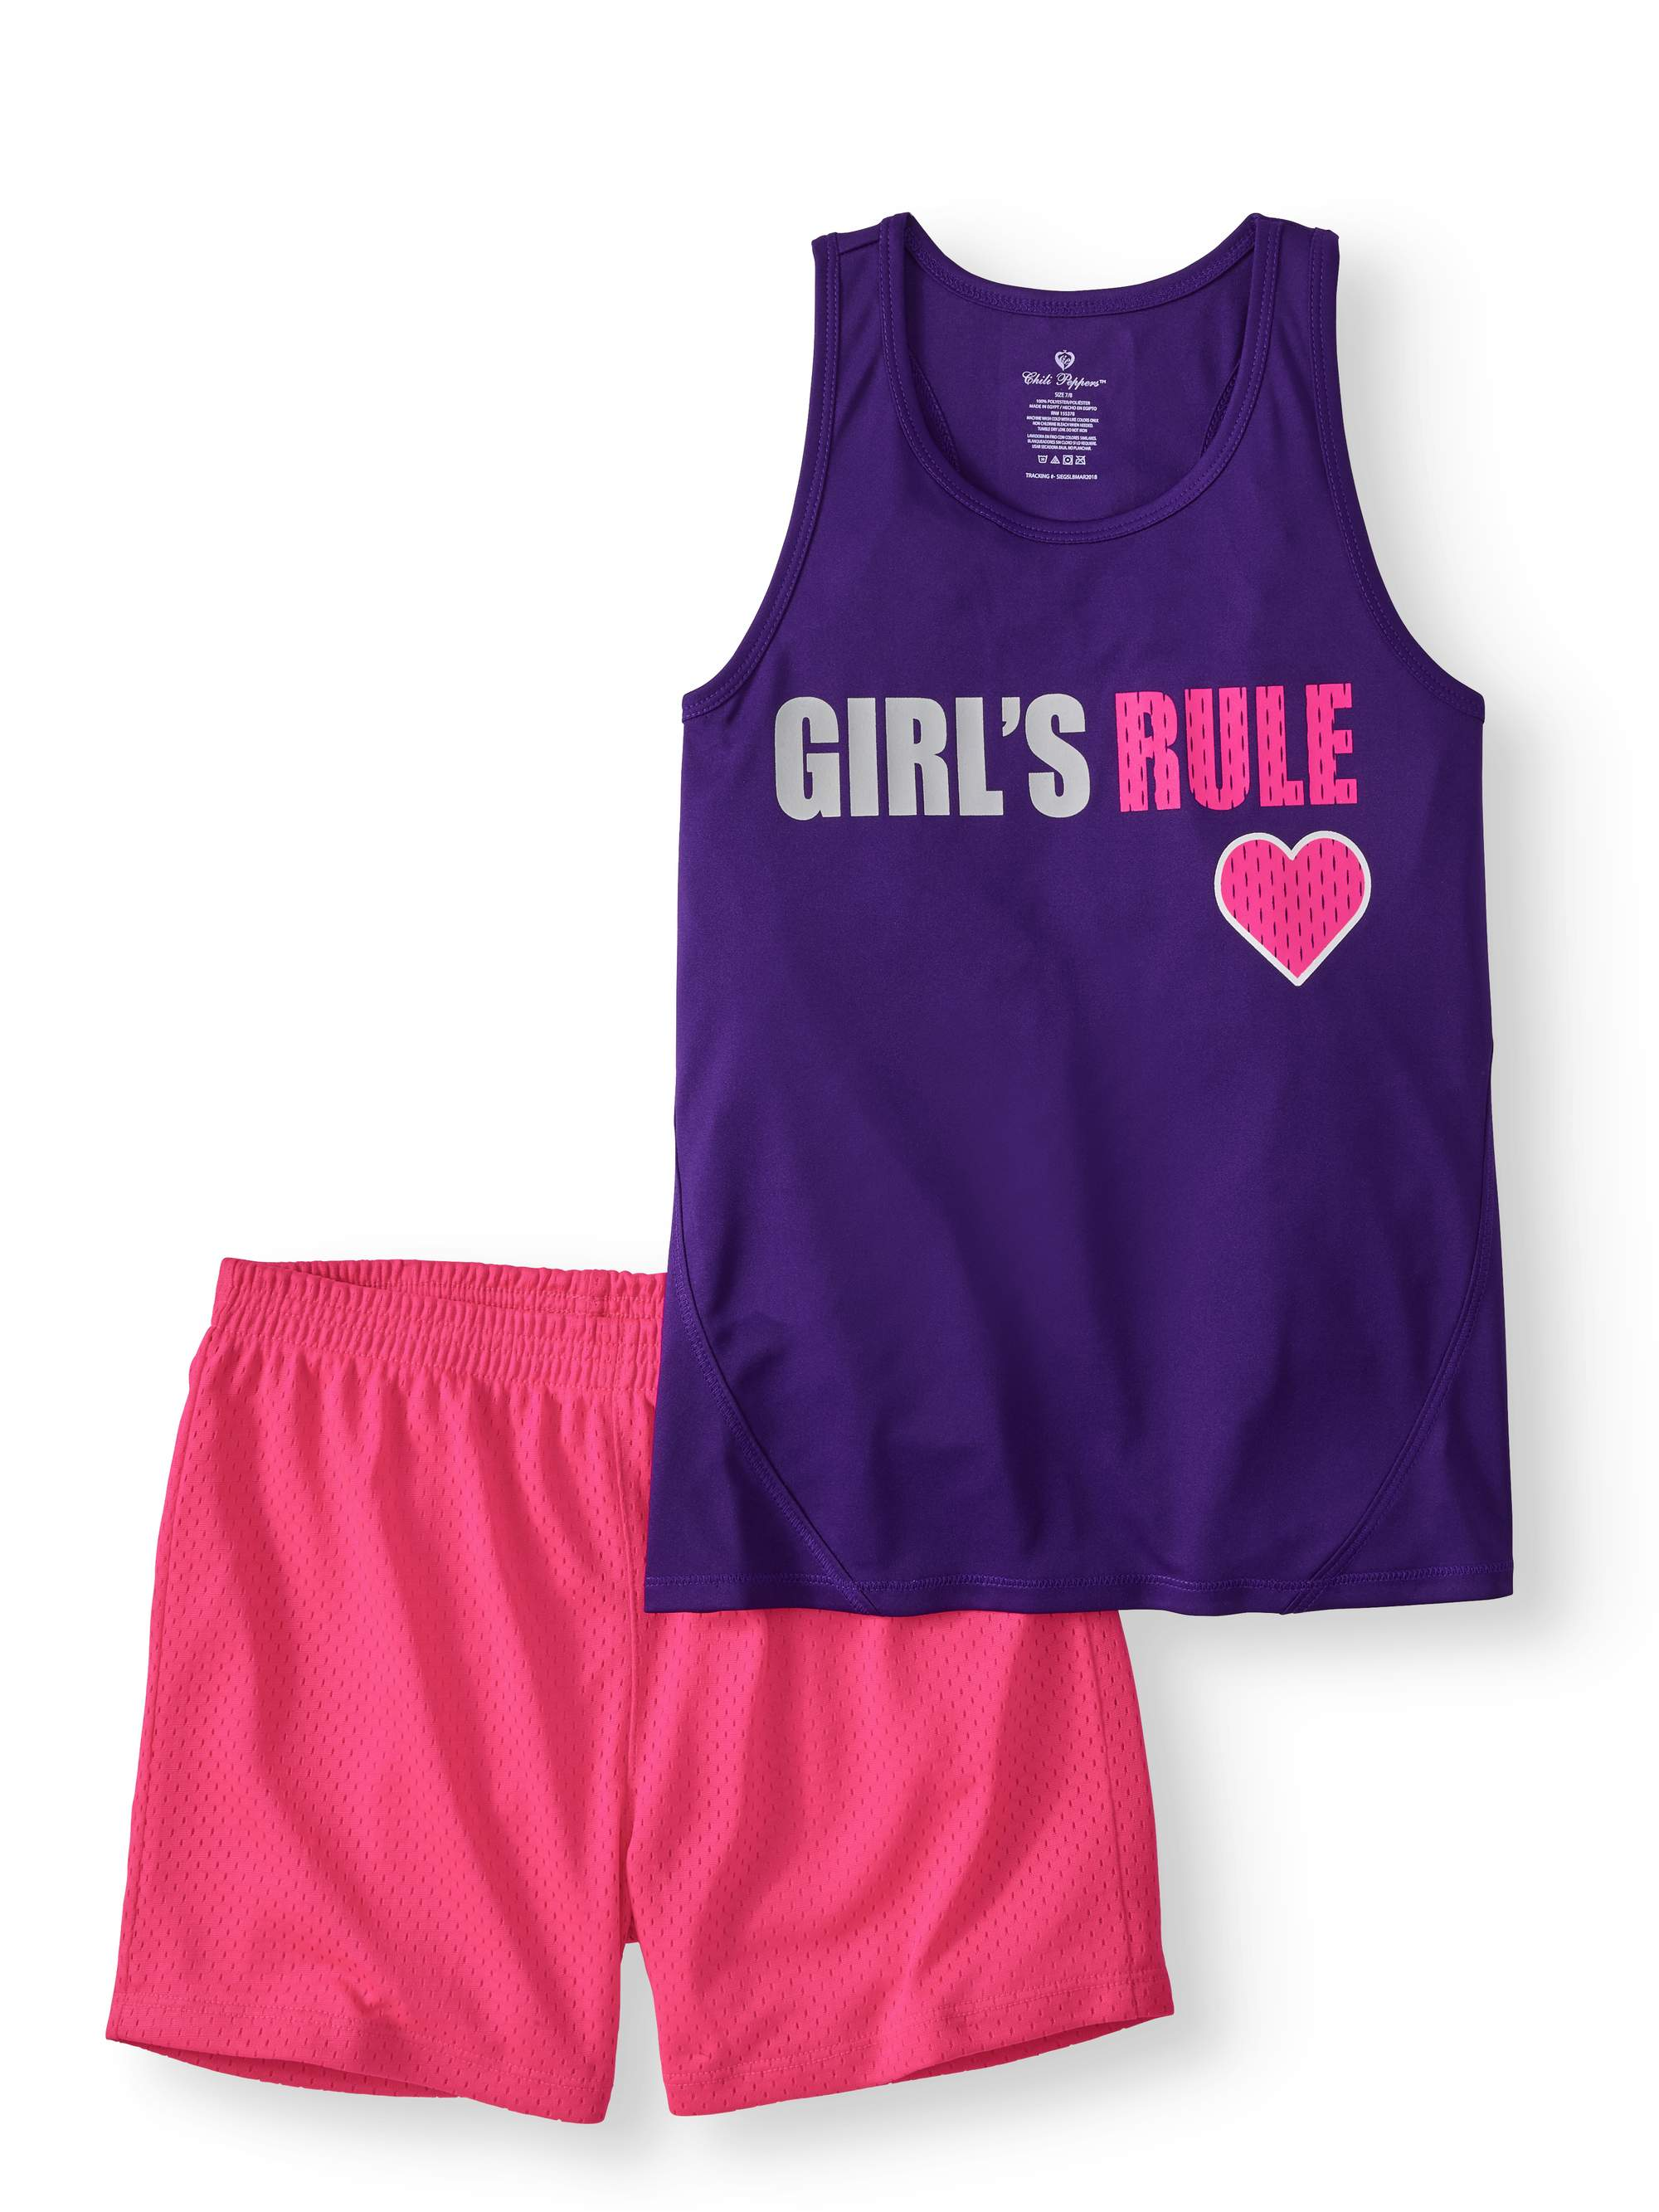 Girls' Graphic Tank Top and Colorblock Mesh Short 2-Piece Active Set